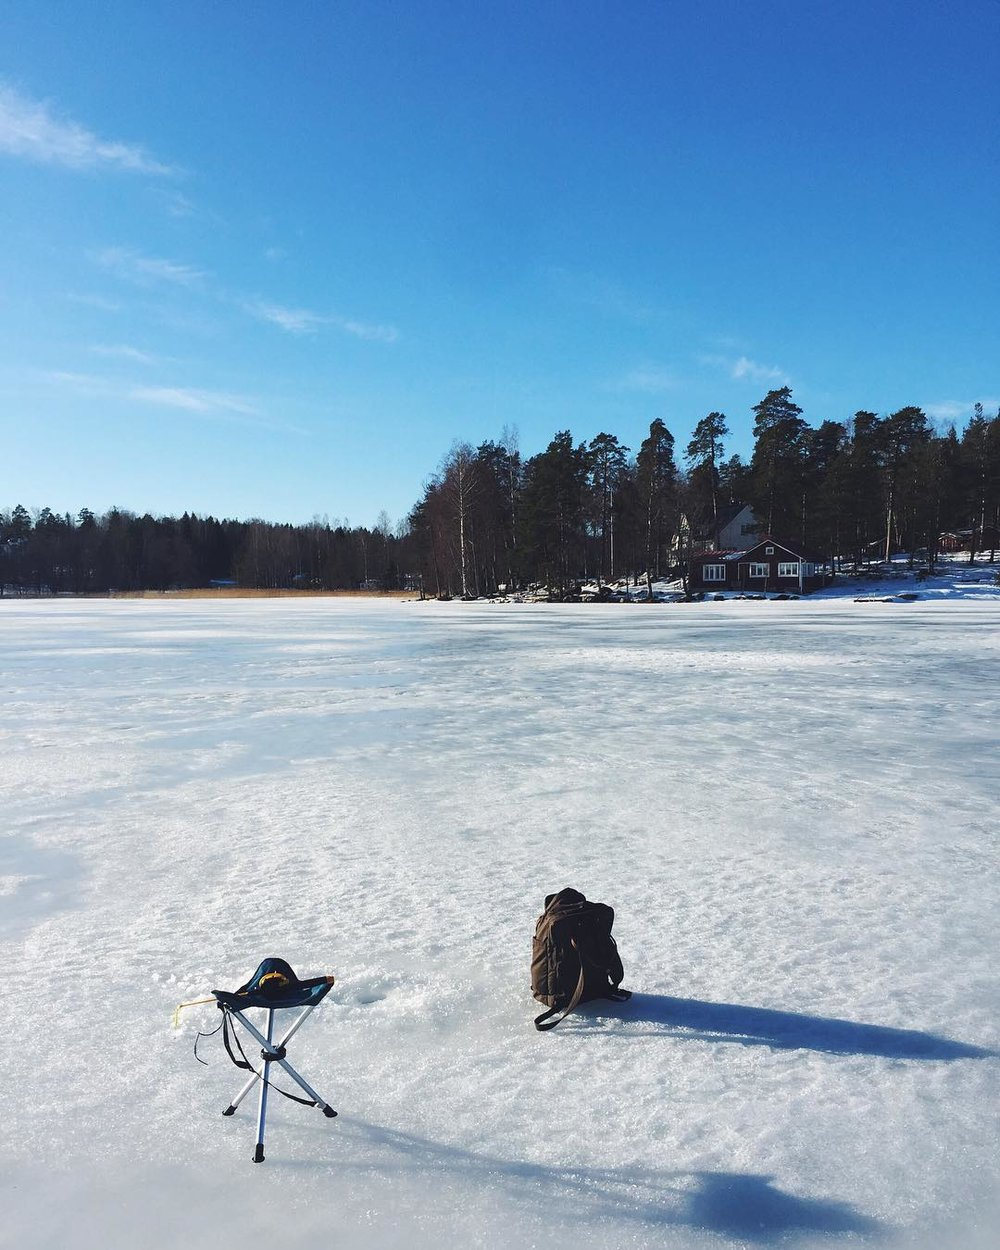 Ice Fishing for the first time, near Espoo, in Finland.